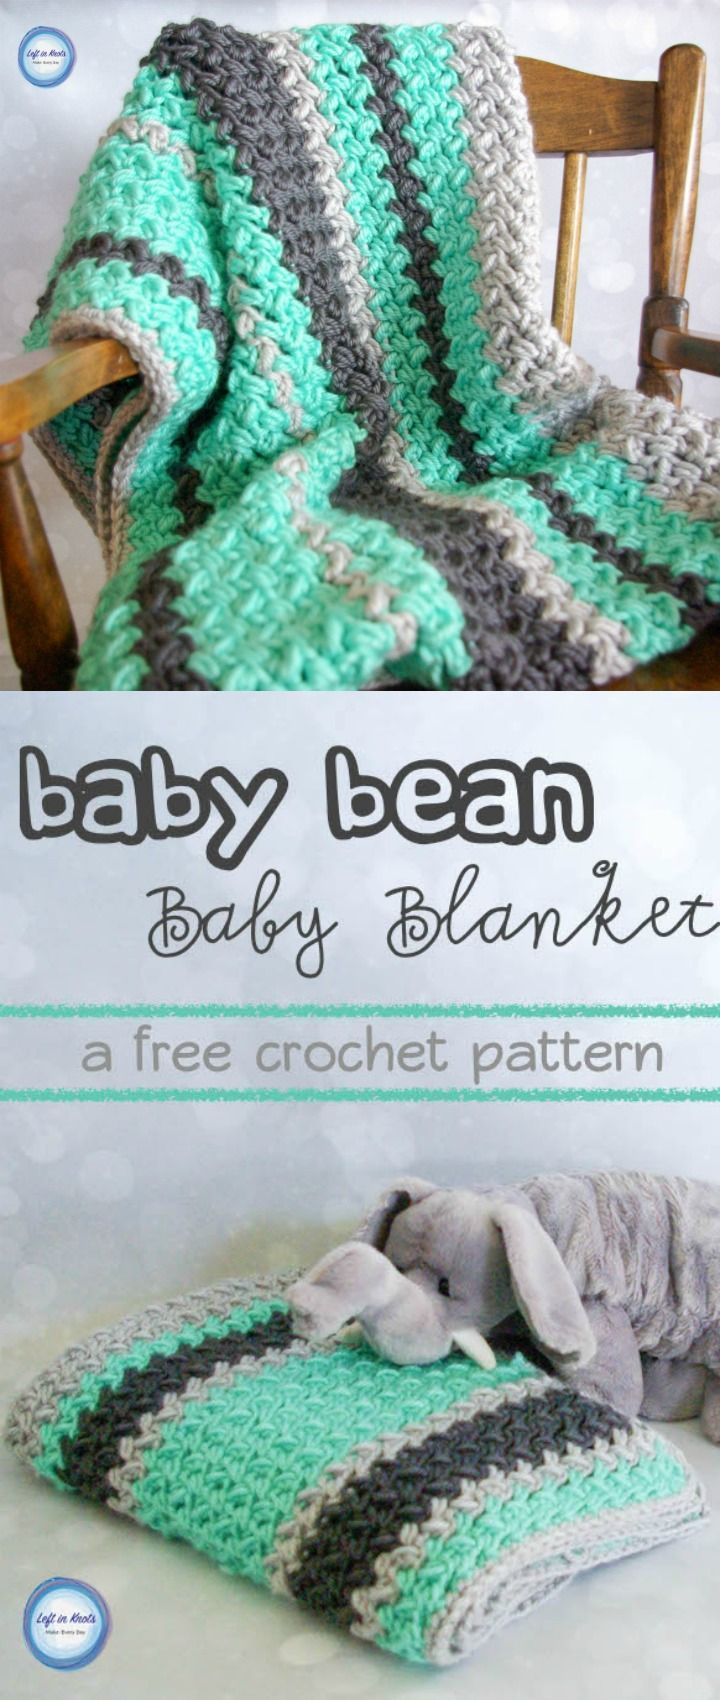 A free baby blanket crochet pattern and video tutorial perfect even for a beginner! Learn how to crochet the baby bean stitch and make this blanket in any size! This pattern uses a silky soft bulky yarn and it works up in a flash! DIY your next baby sh